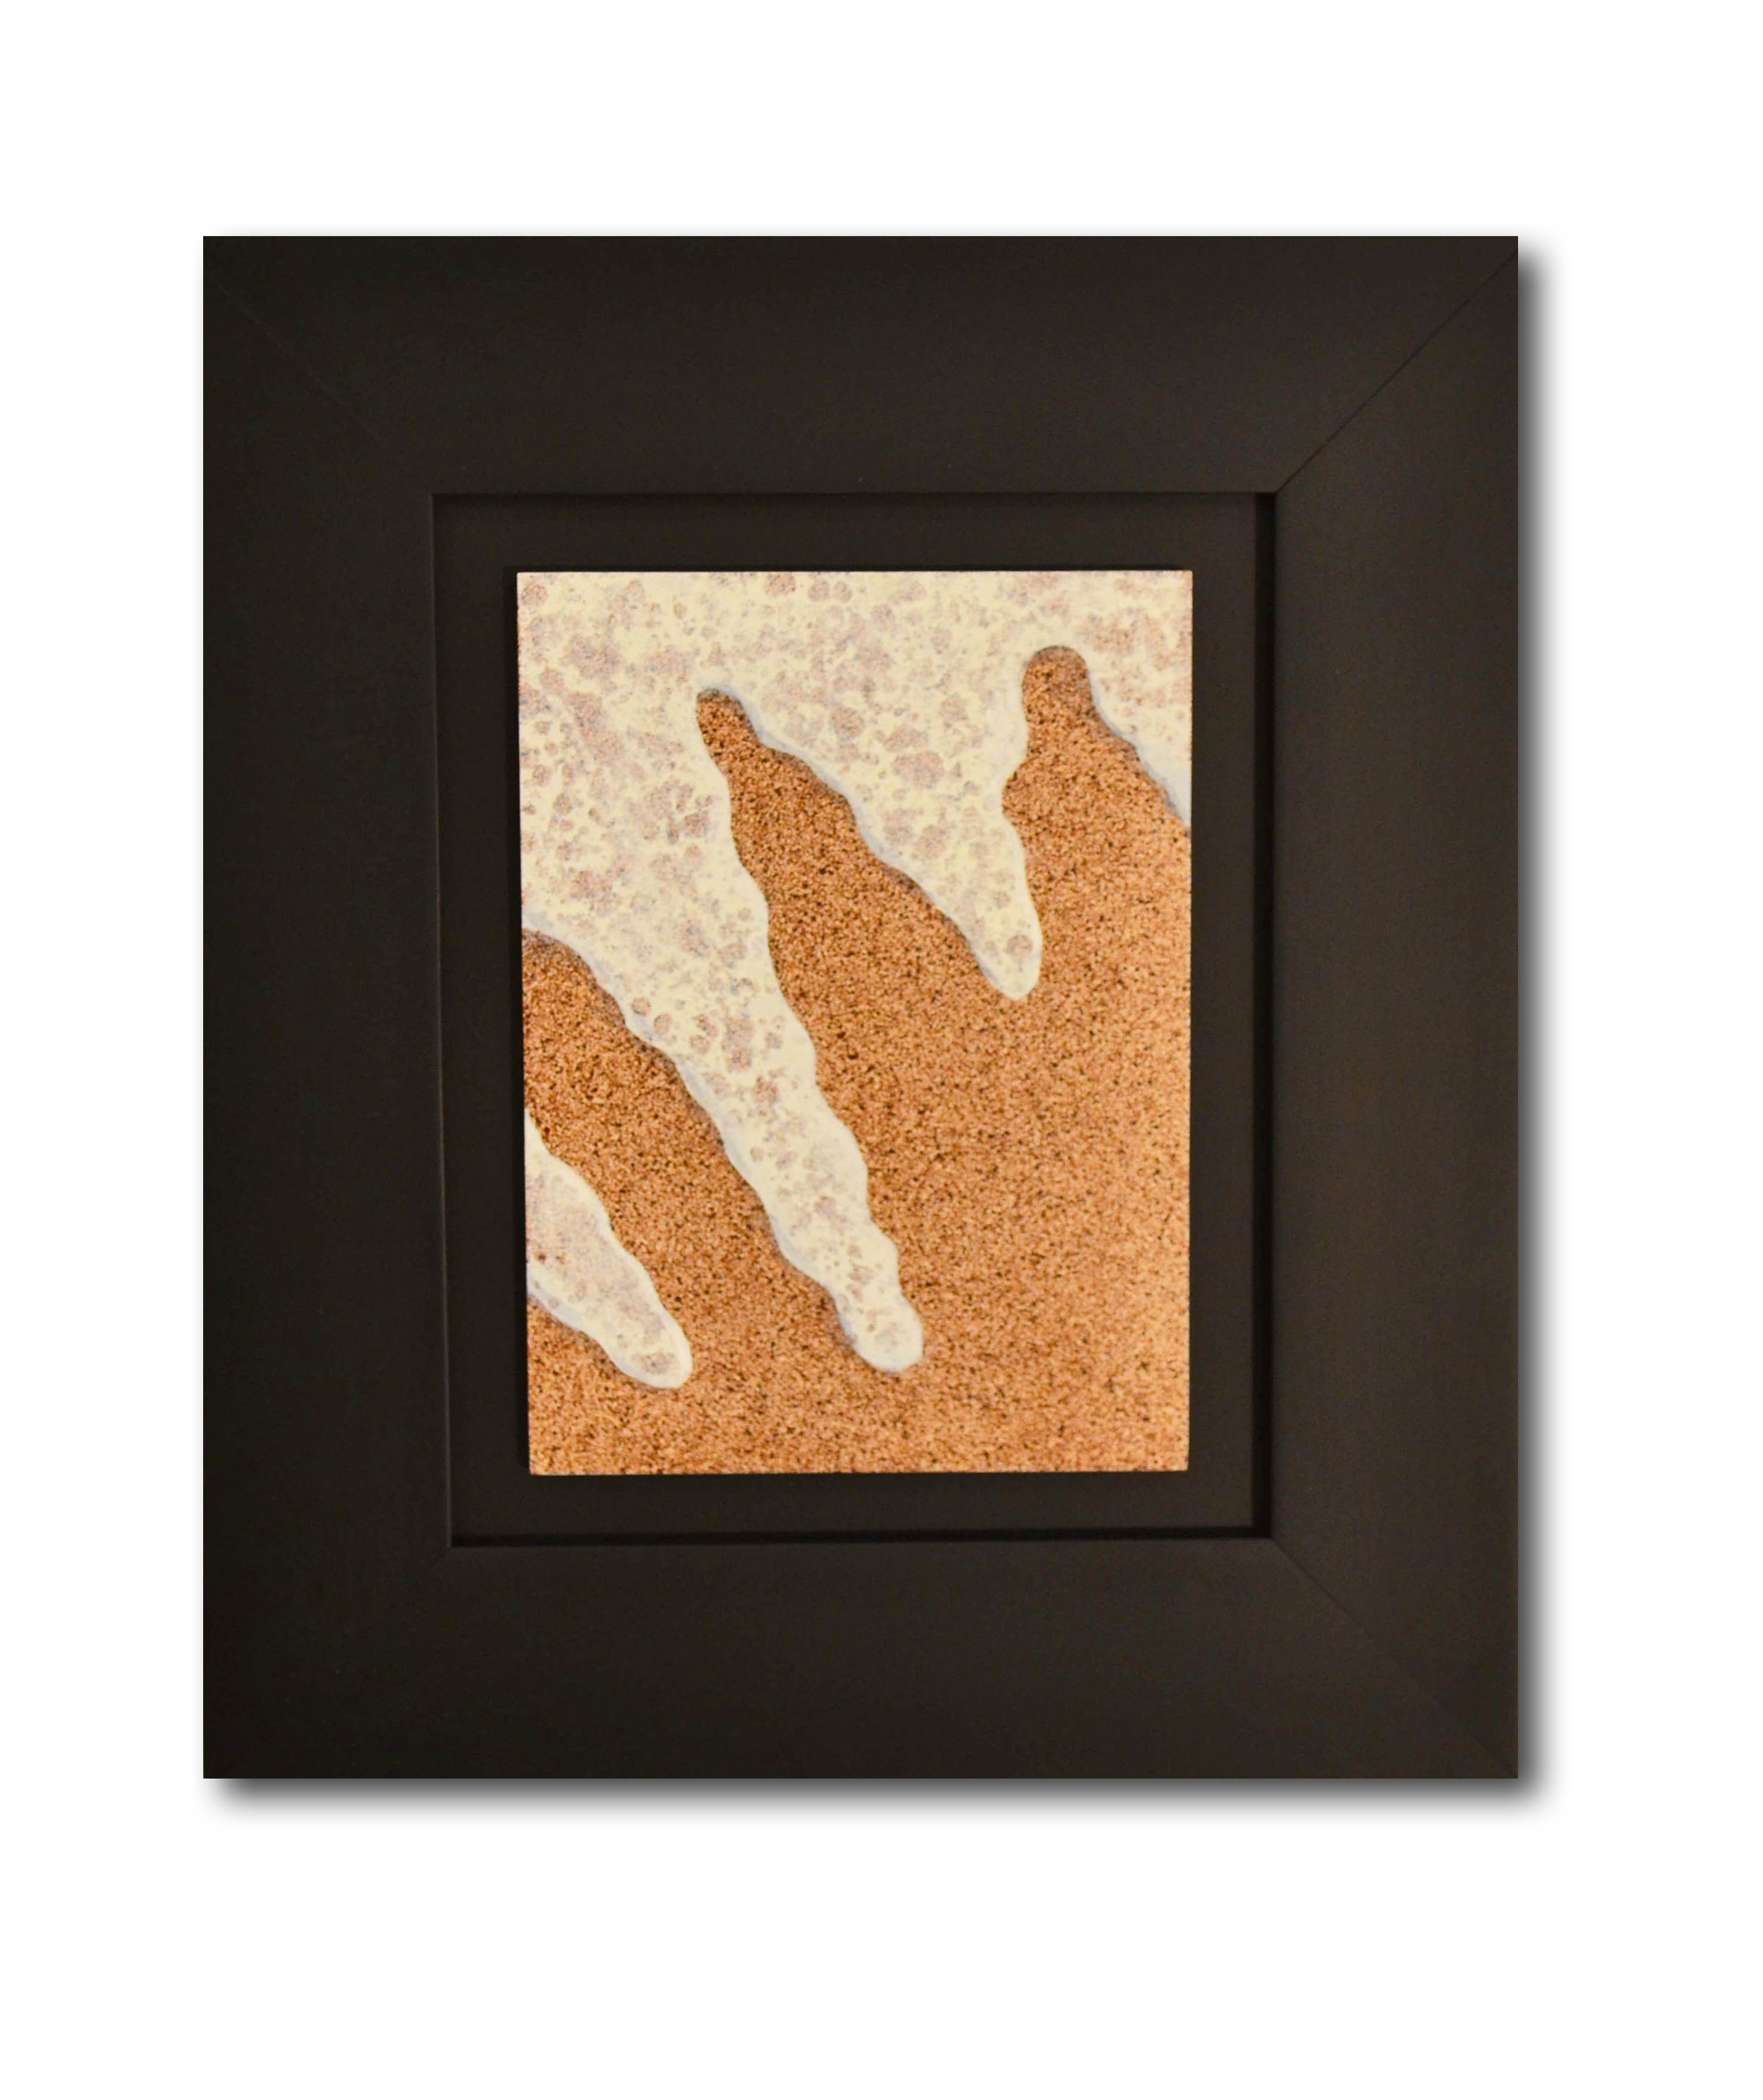 """Title: Dune 25 Artist: Mark Travers Year: 2011 Medium: Oil and acrylic on panel Size: 12"""" x 14"""" (including frame)"""